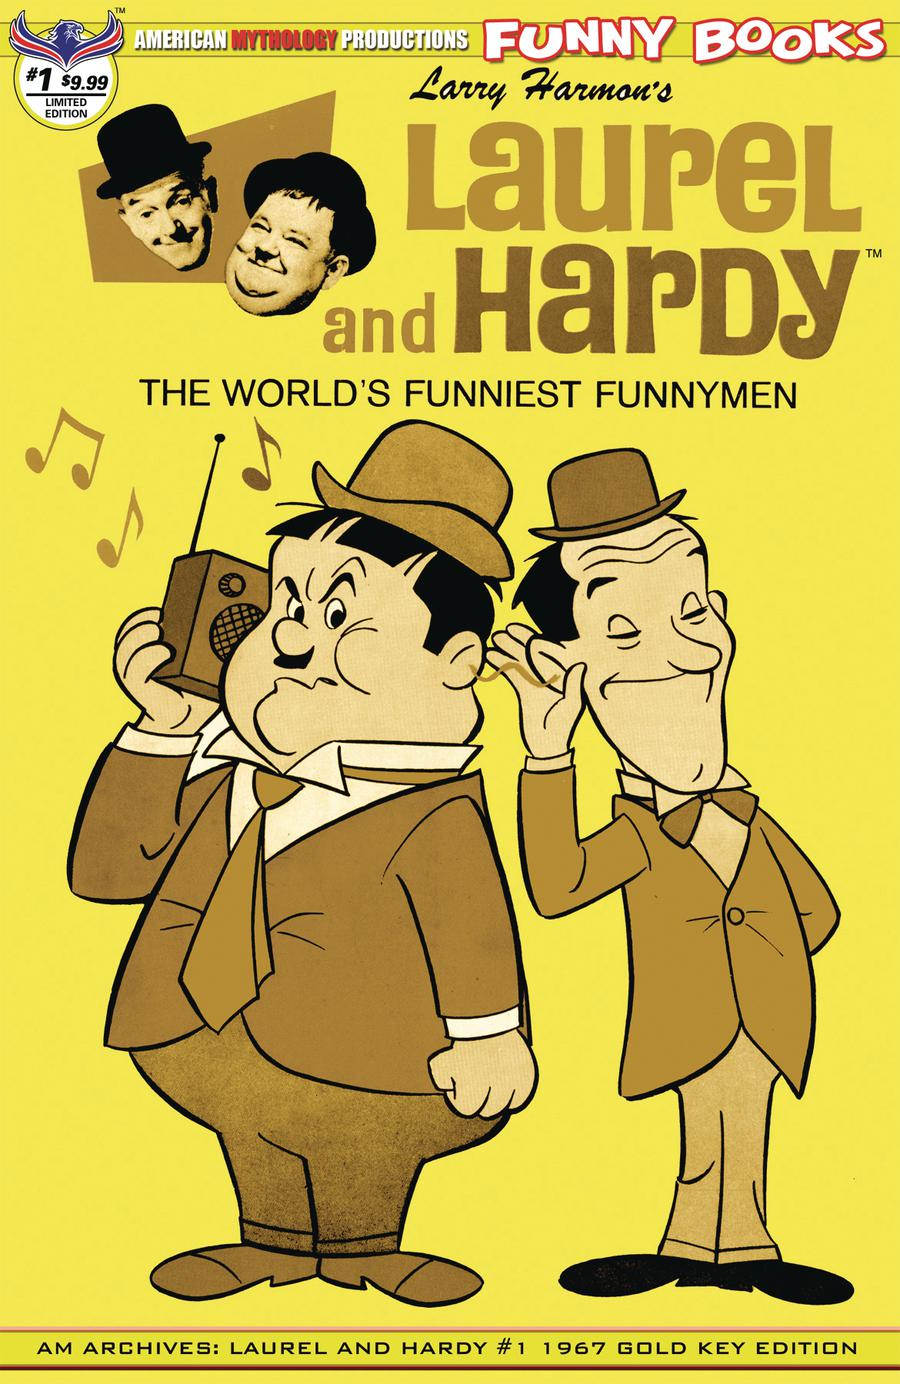 American Mythology Archives Laurel & Hardy #1 1967 Gold Key Edition Cover B Limited Edition Retro Animation Variant Cover